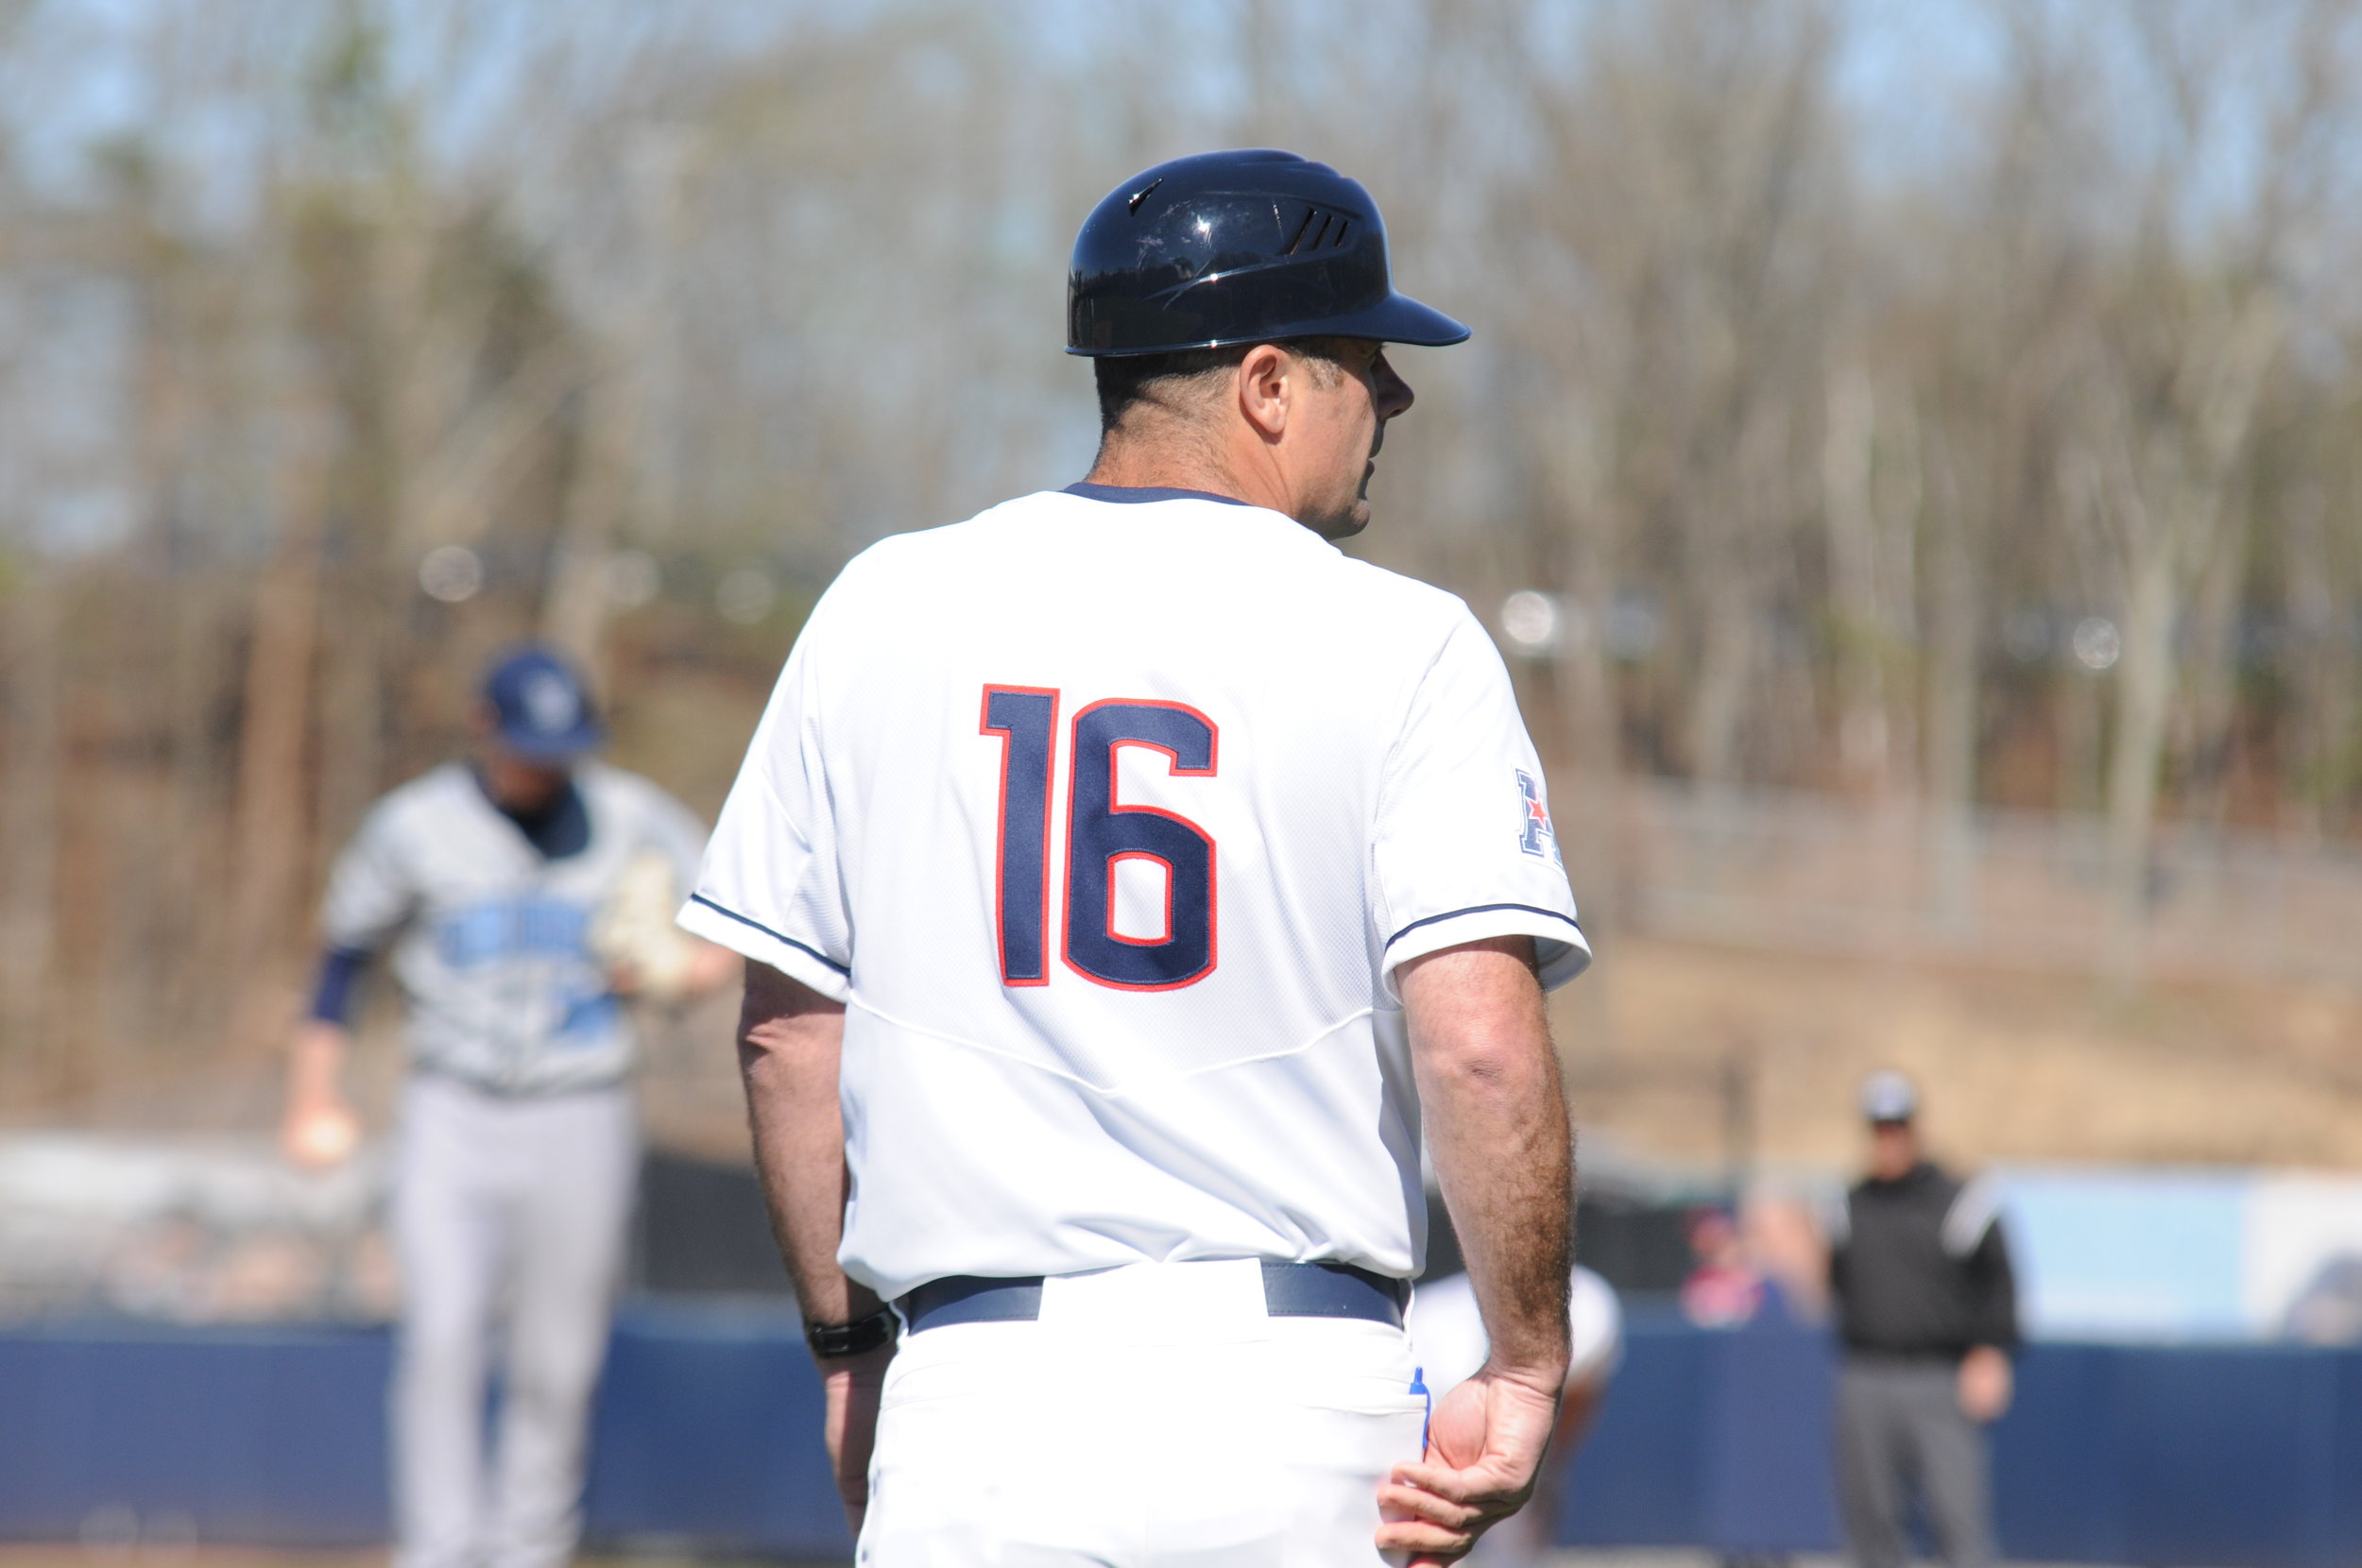 UConn baseball head coach Jim Penders' impact extends beyond Storrs. Photo by Nicole Jain/The Daily Campus